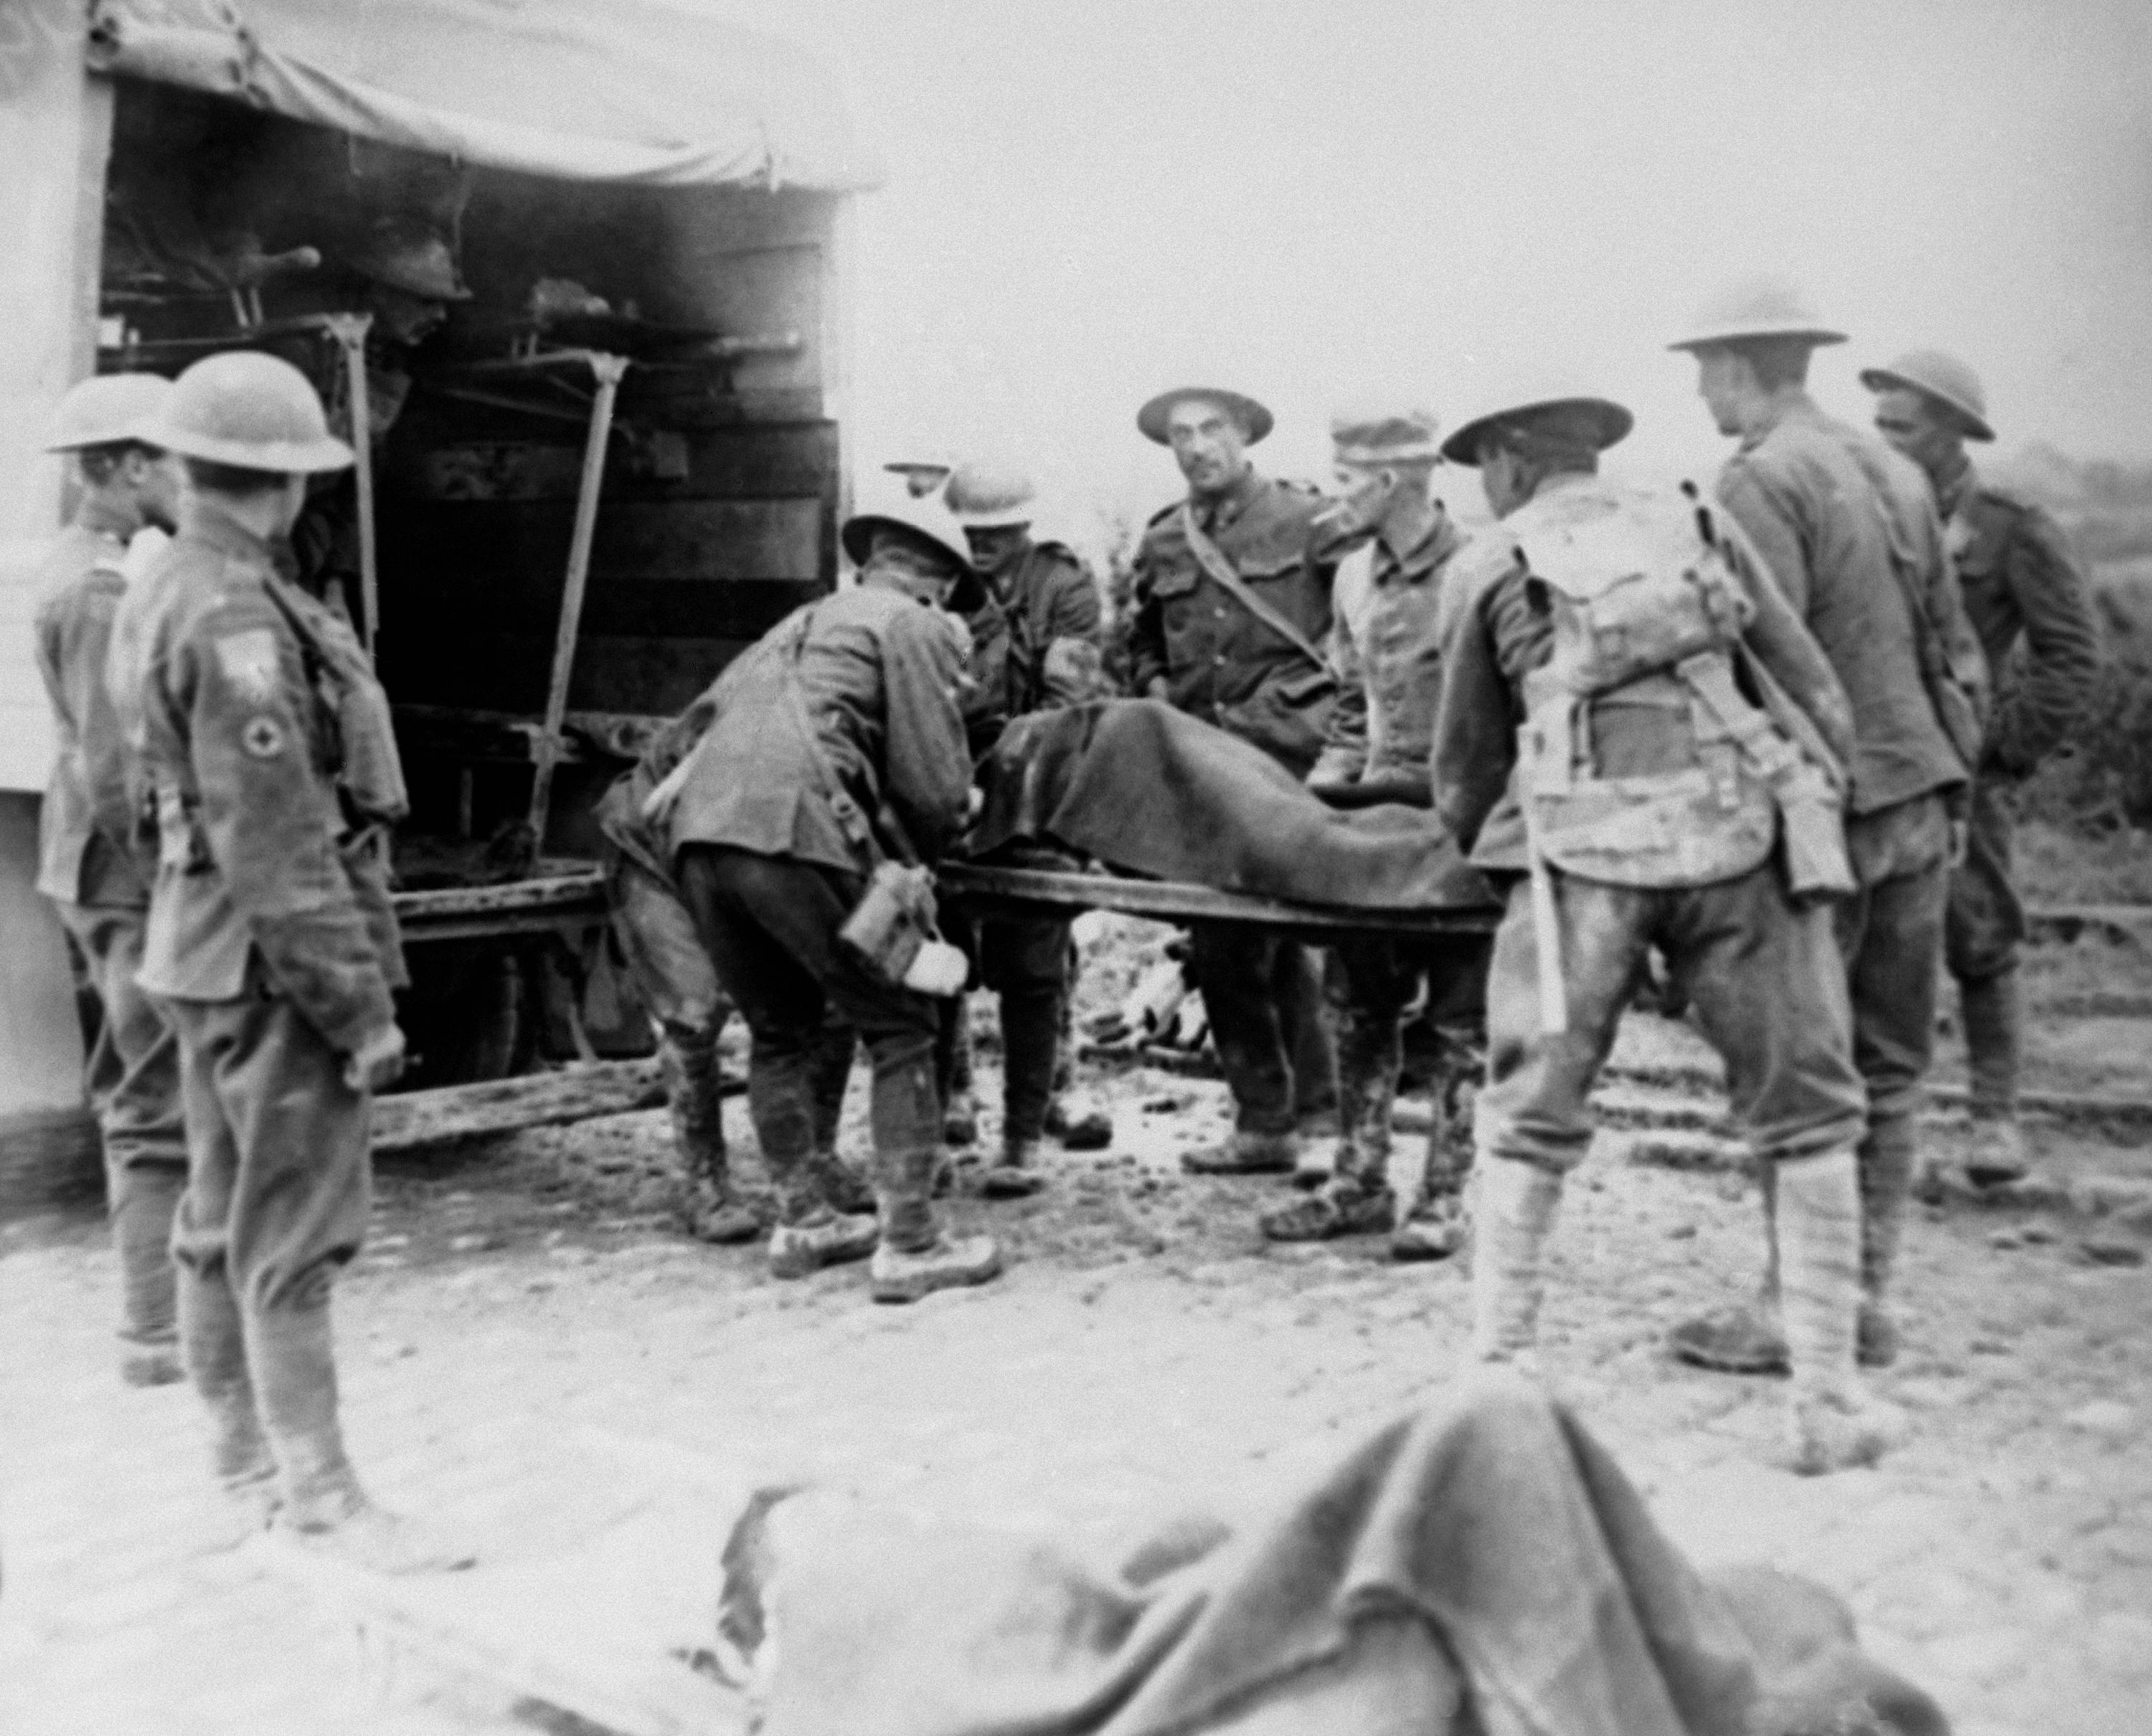 69 OF 100: In this undated file photo, World War I wounded are being placed in ambulance during the advance on Lens, France.